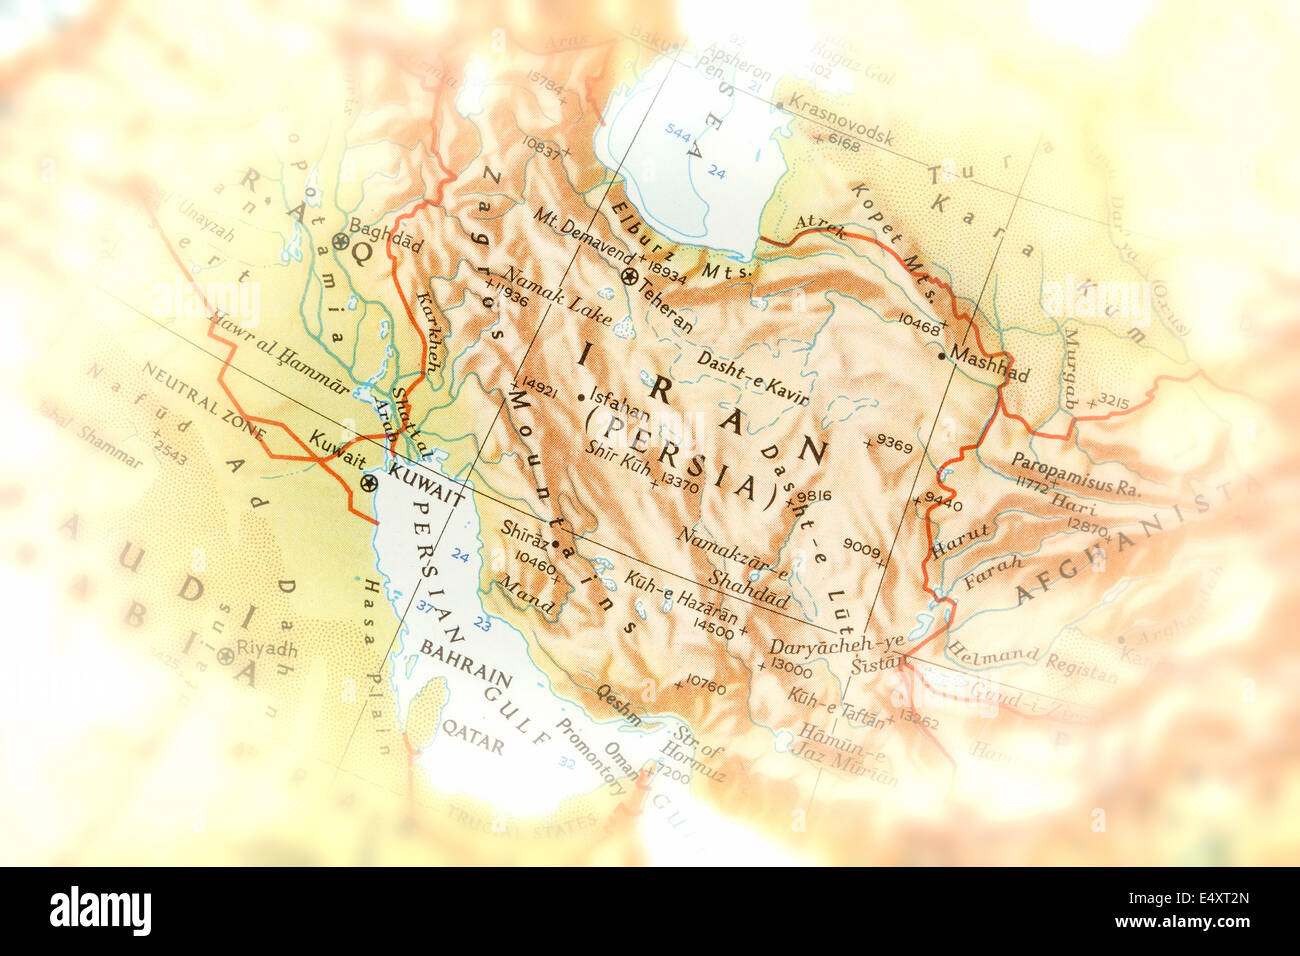 Traveler focused on Persia - preparation for the journey - Stock Image